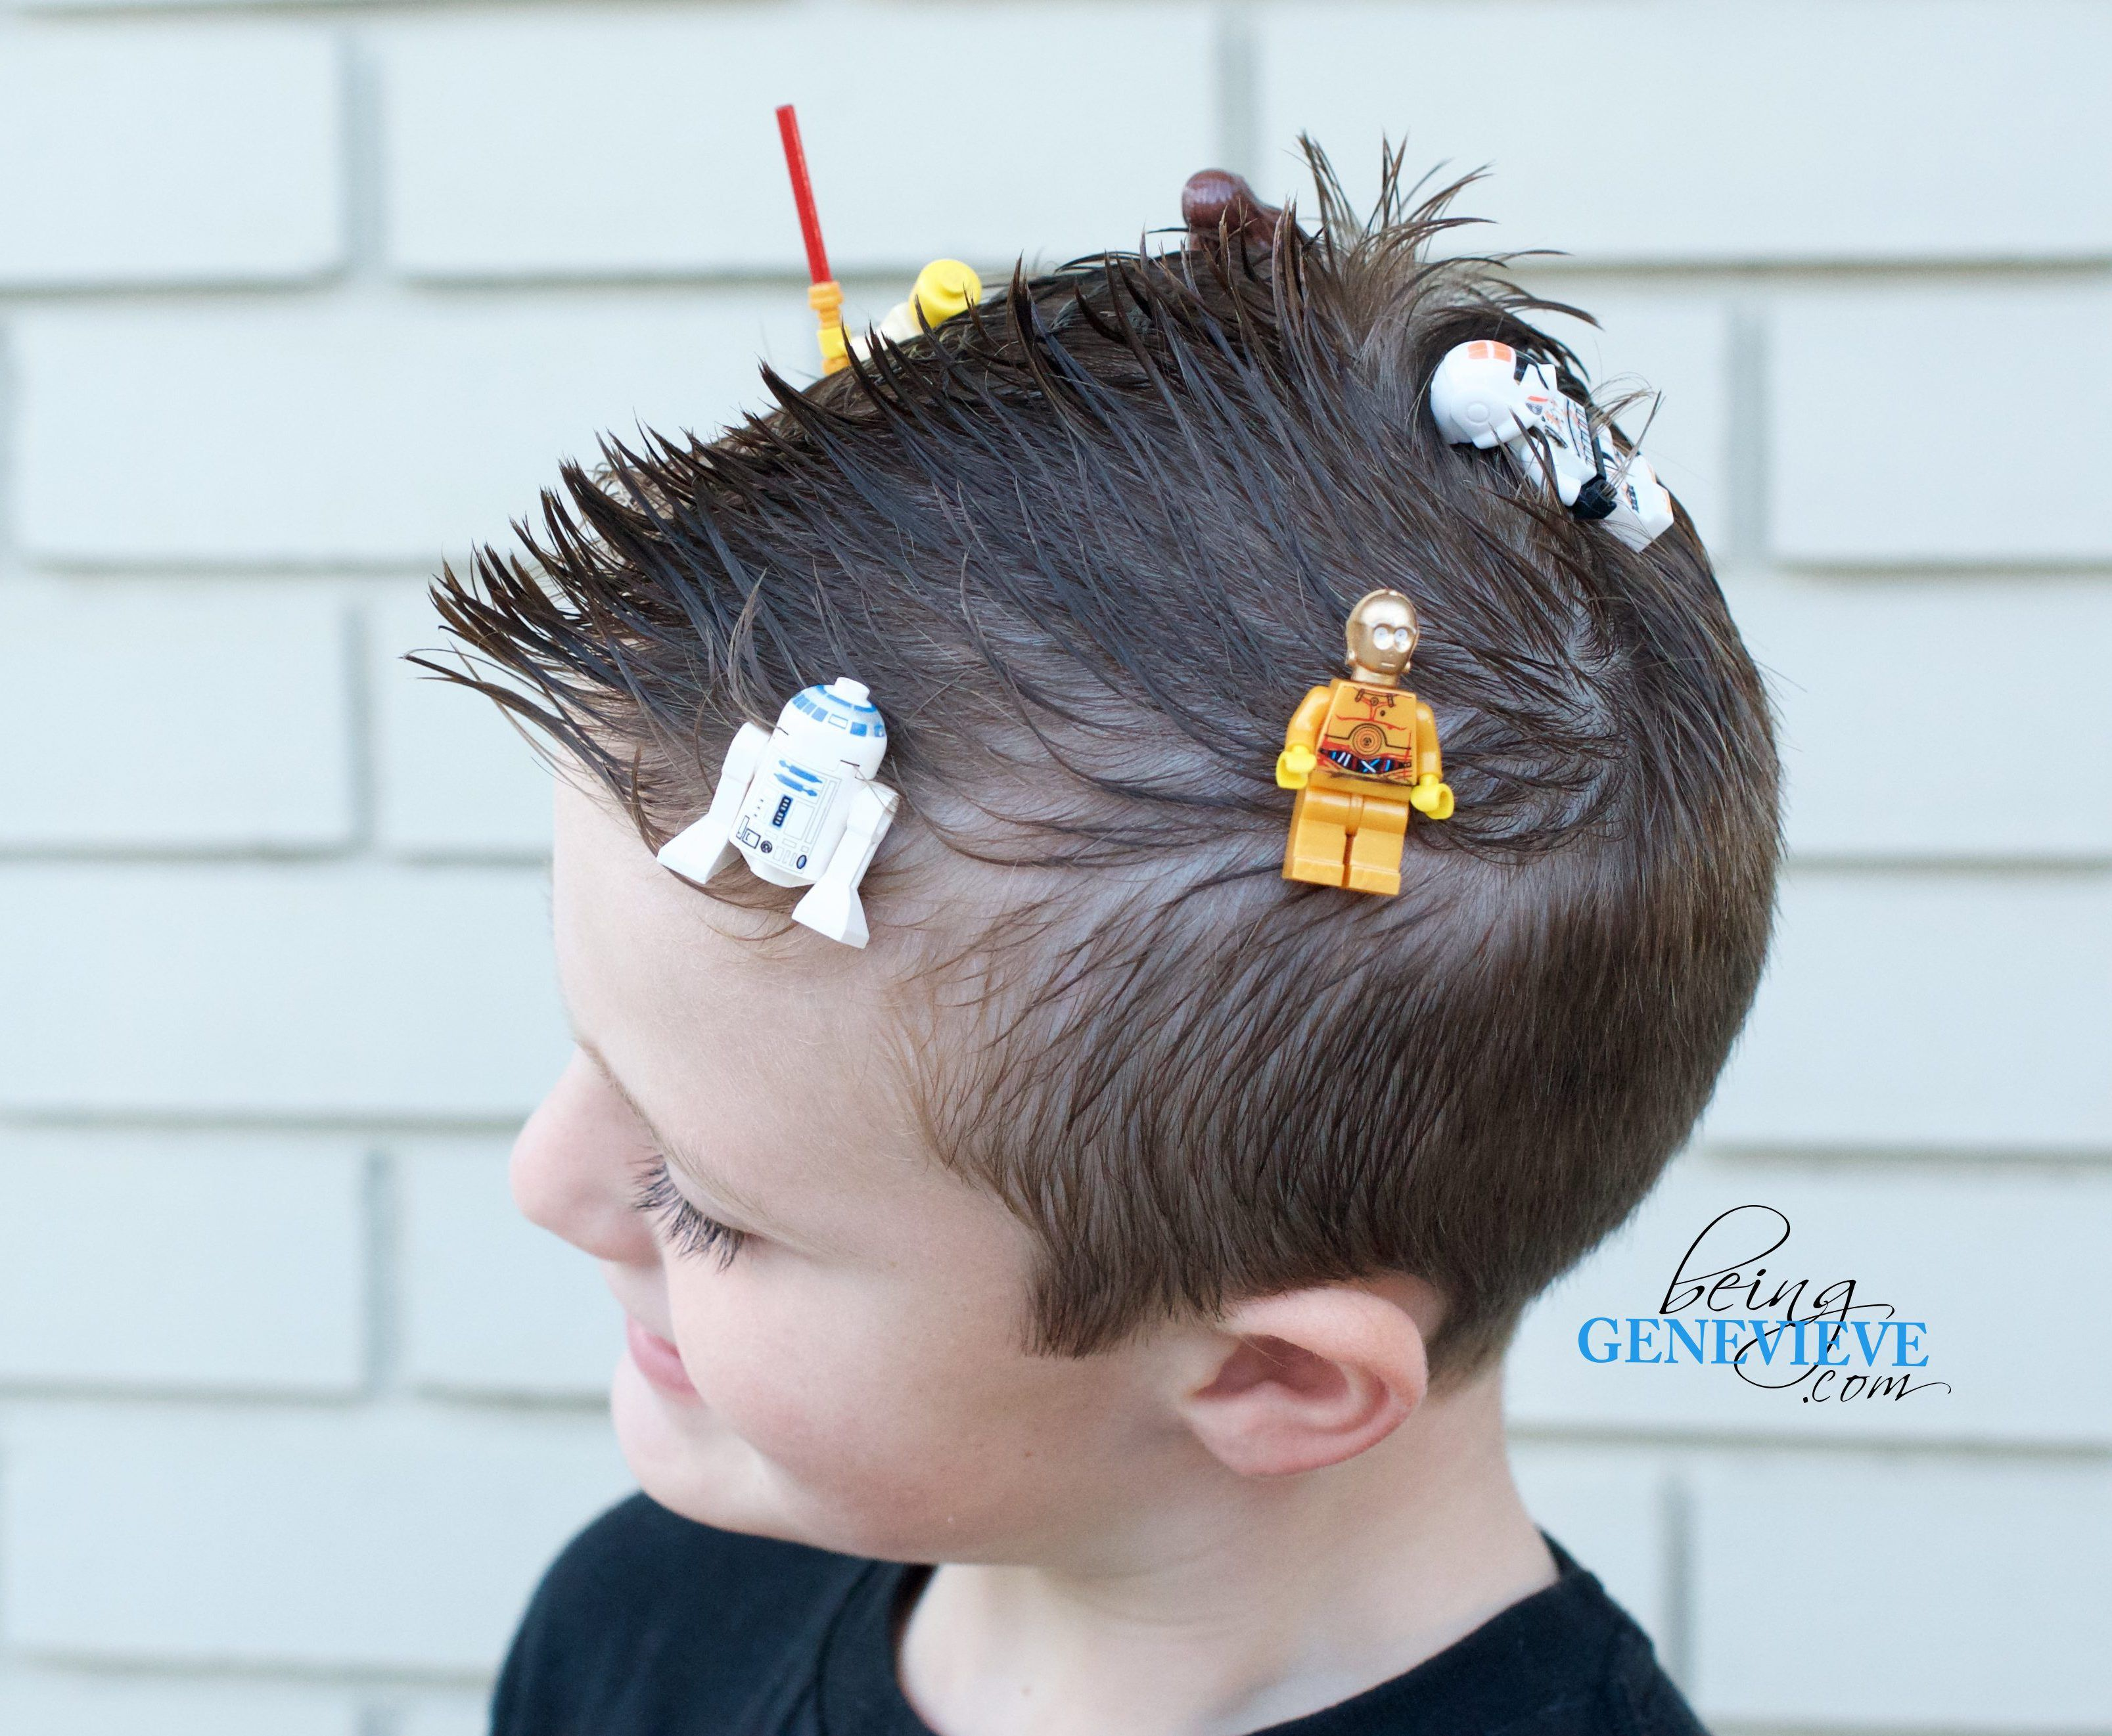 Crazy Awesome Lego Hair Beinggenevieve Com Need An Awesome Crazy Hair Day Idea For Your Boy Or Girl With Really Sho Wacky Hair Wacky Hair Days Crazy Hair